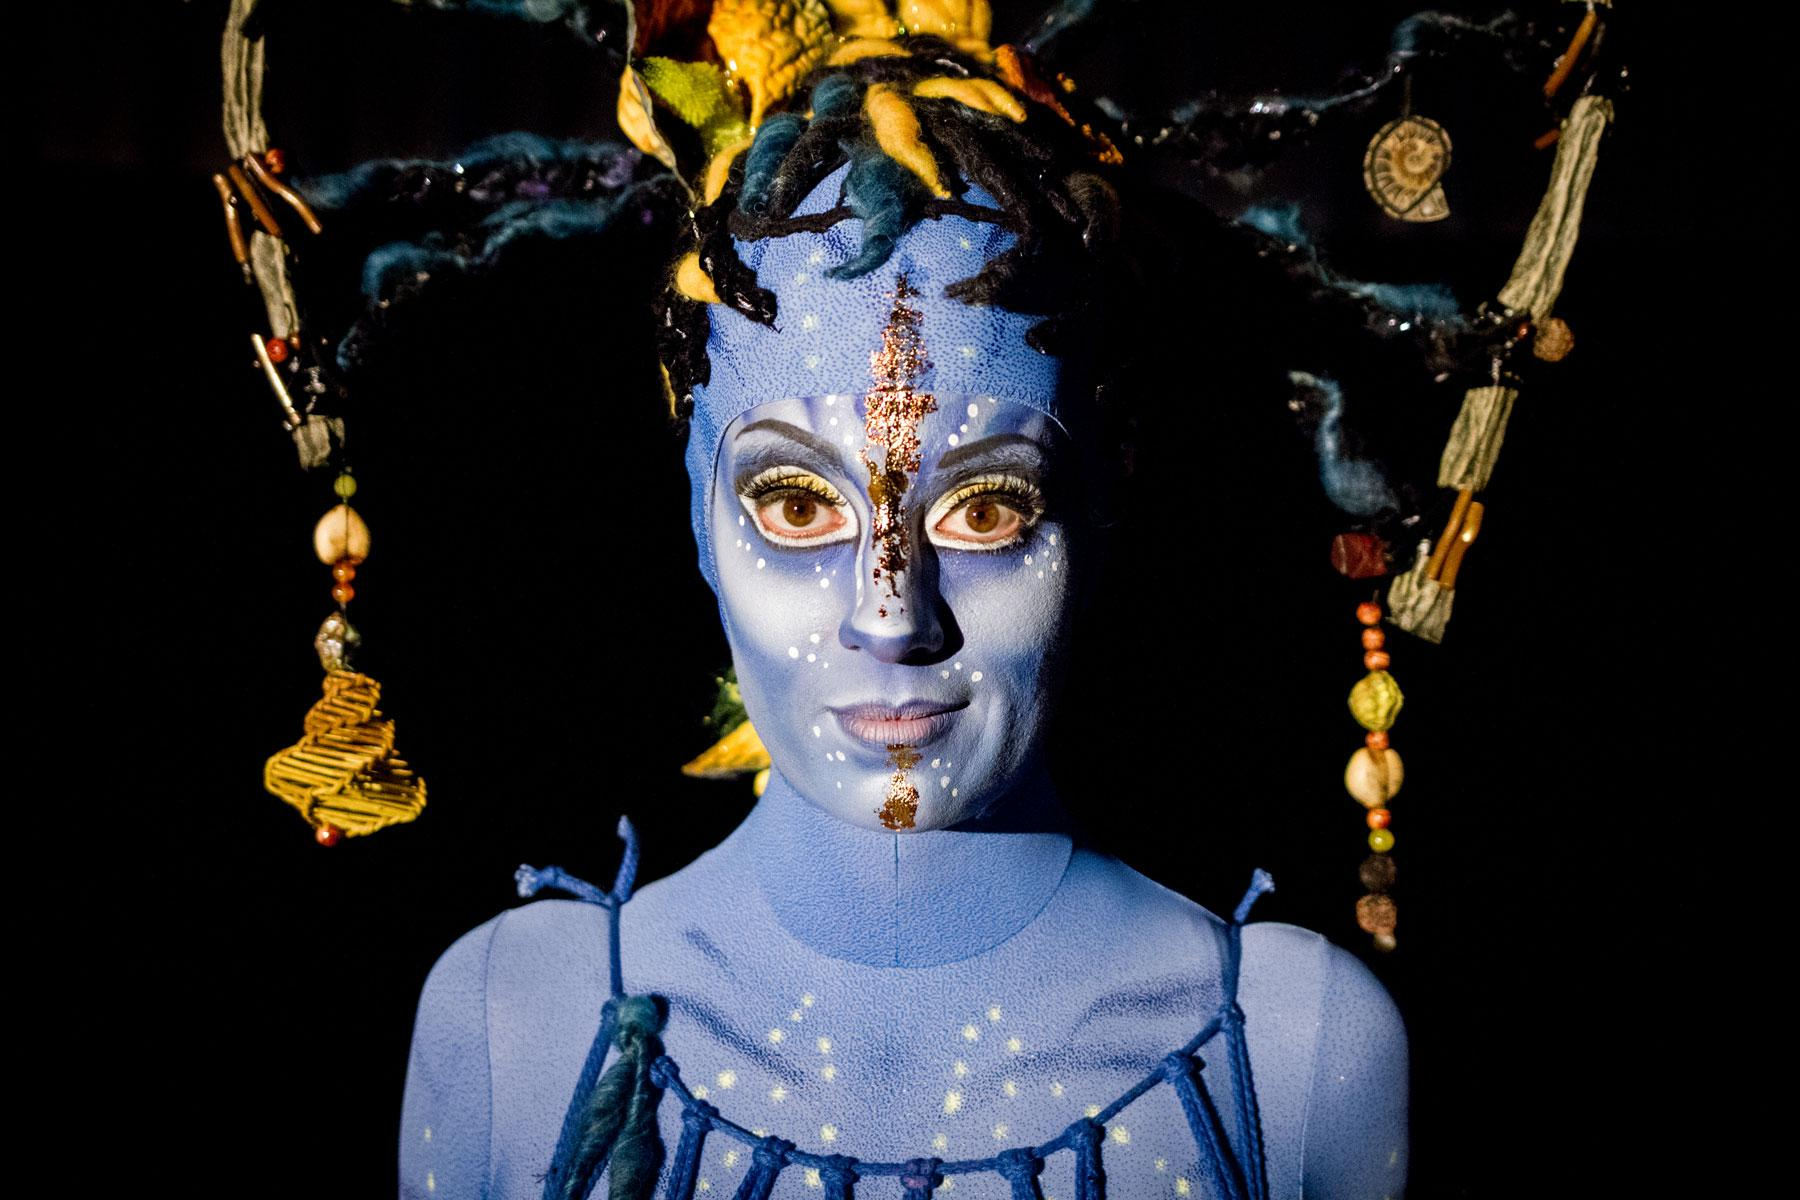 A closeup of the intricate makeup and design worn by the performers in Cirque du Soleil's new production,